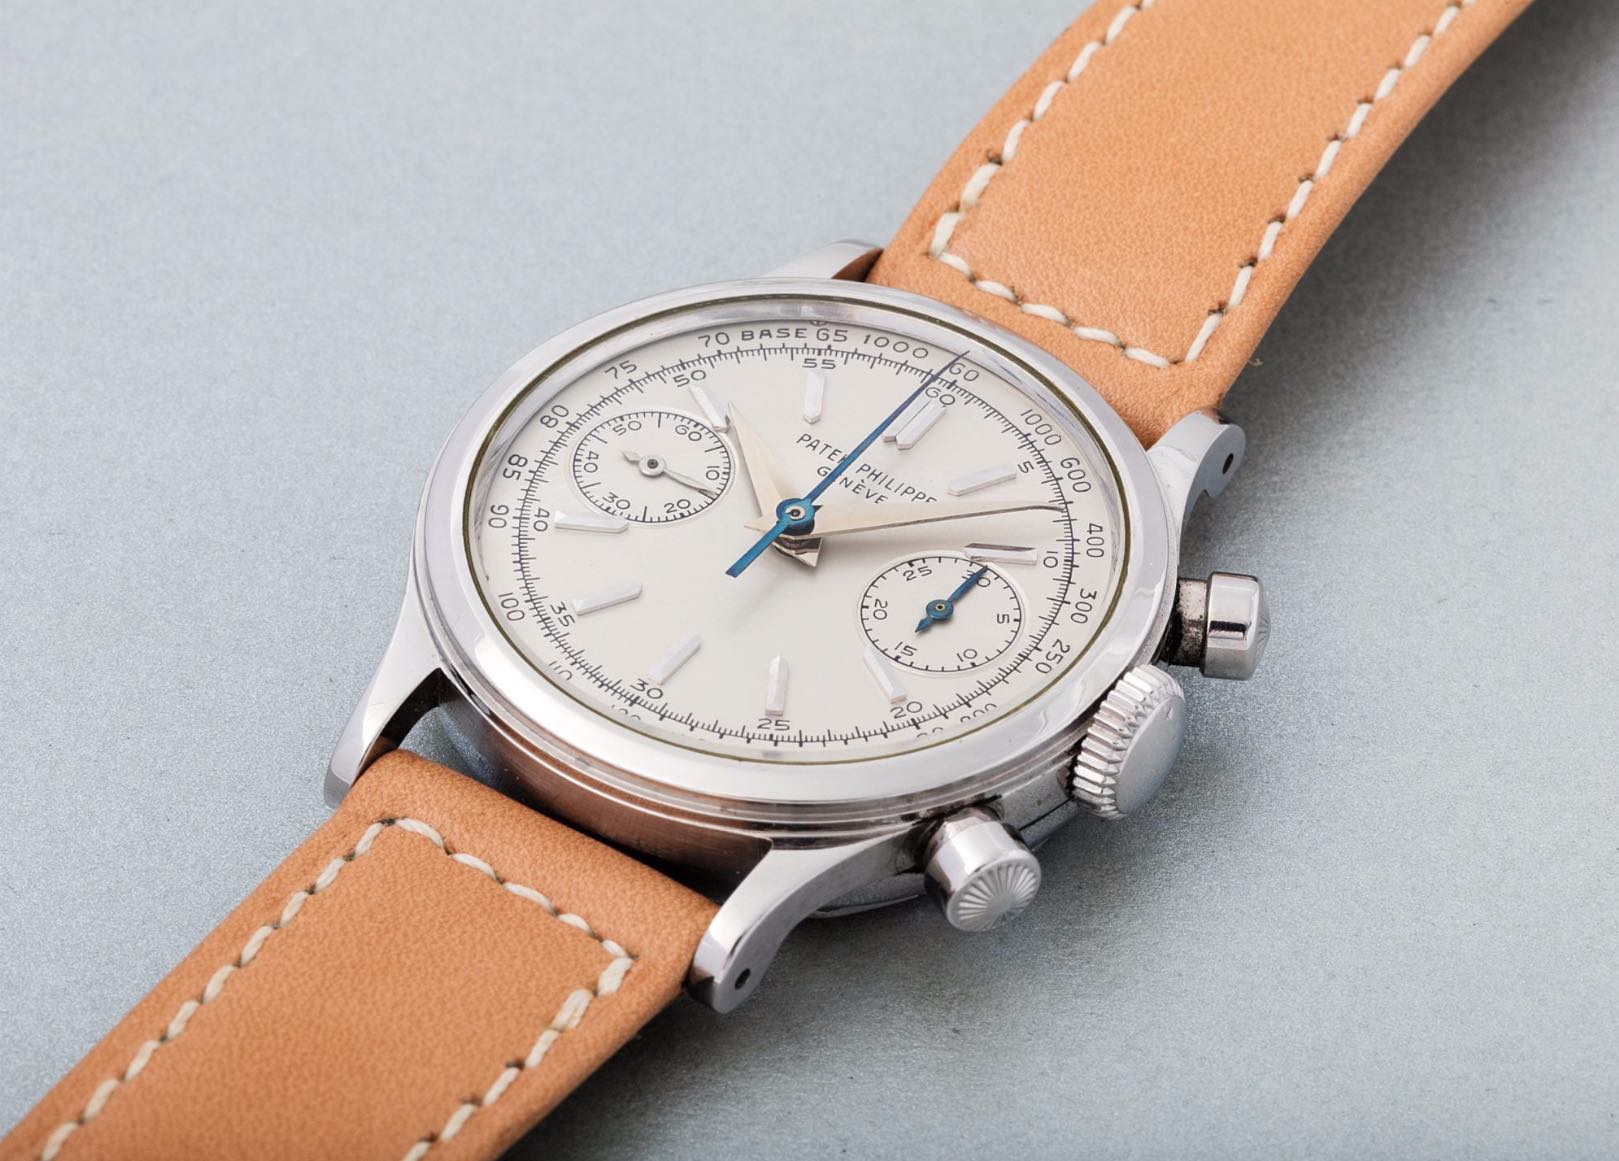 Patek Philippe Hand-wound chronograph 1463 - credits Phillips Watches